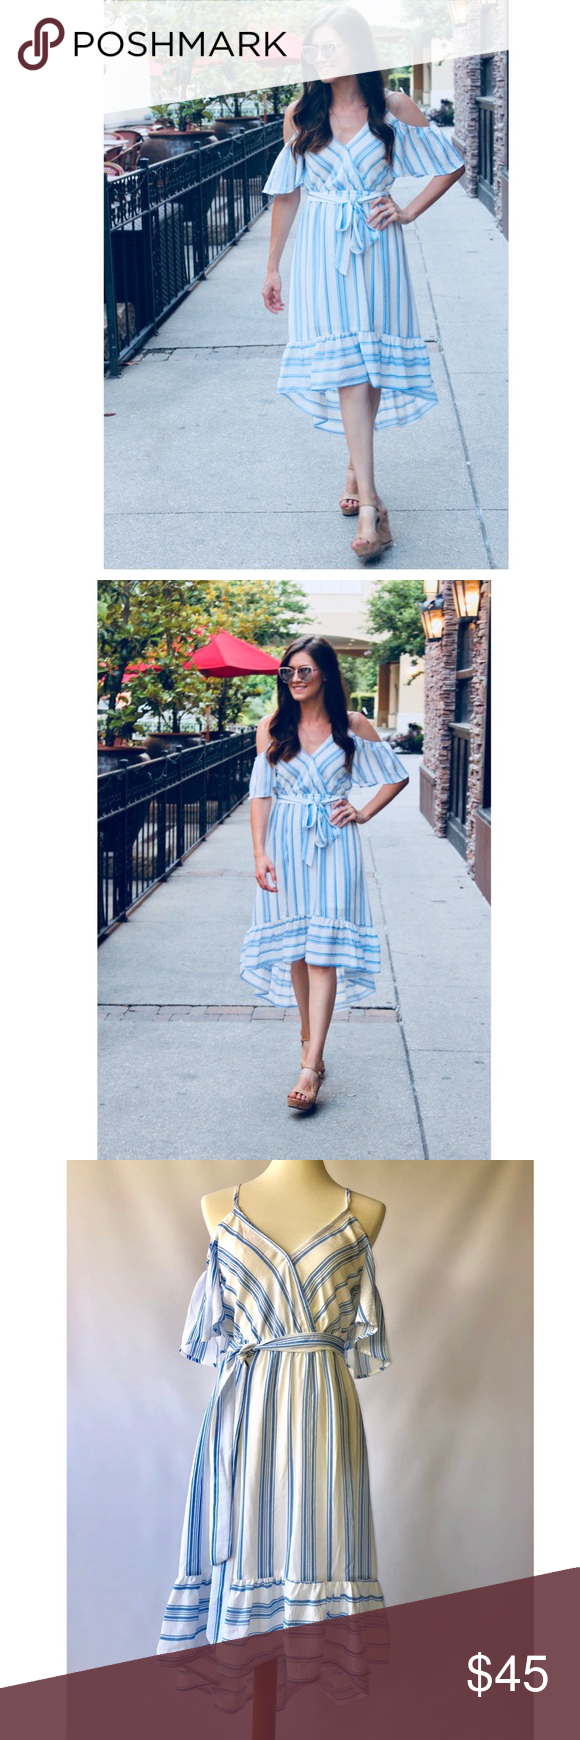 9307cb5b6a8d Blue and White Cold Shoulder Hi Lo Dress Adorable light blue and ivory  striped cold shoulder dress with ruffled Hi-Lo hem. Shoulder straps are  adjustable ...